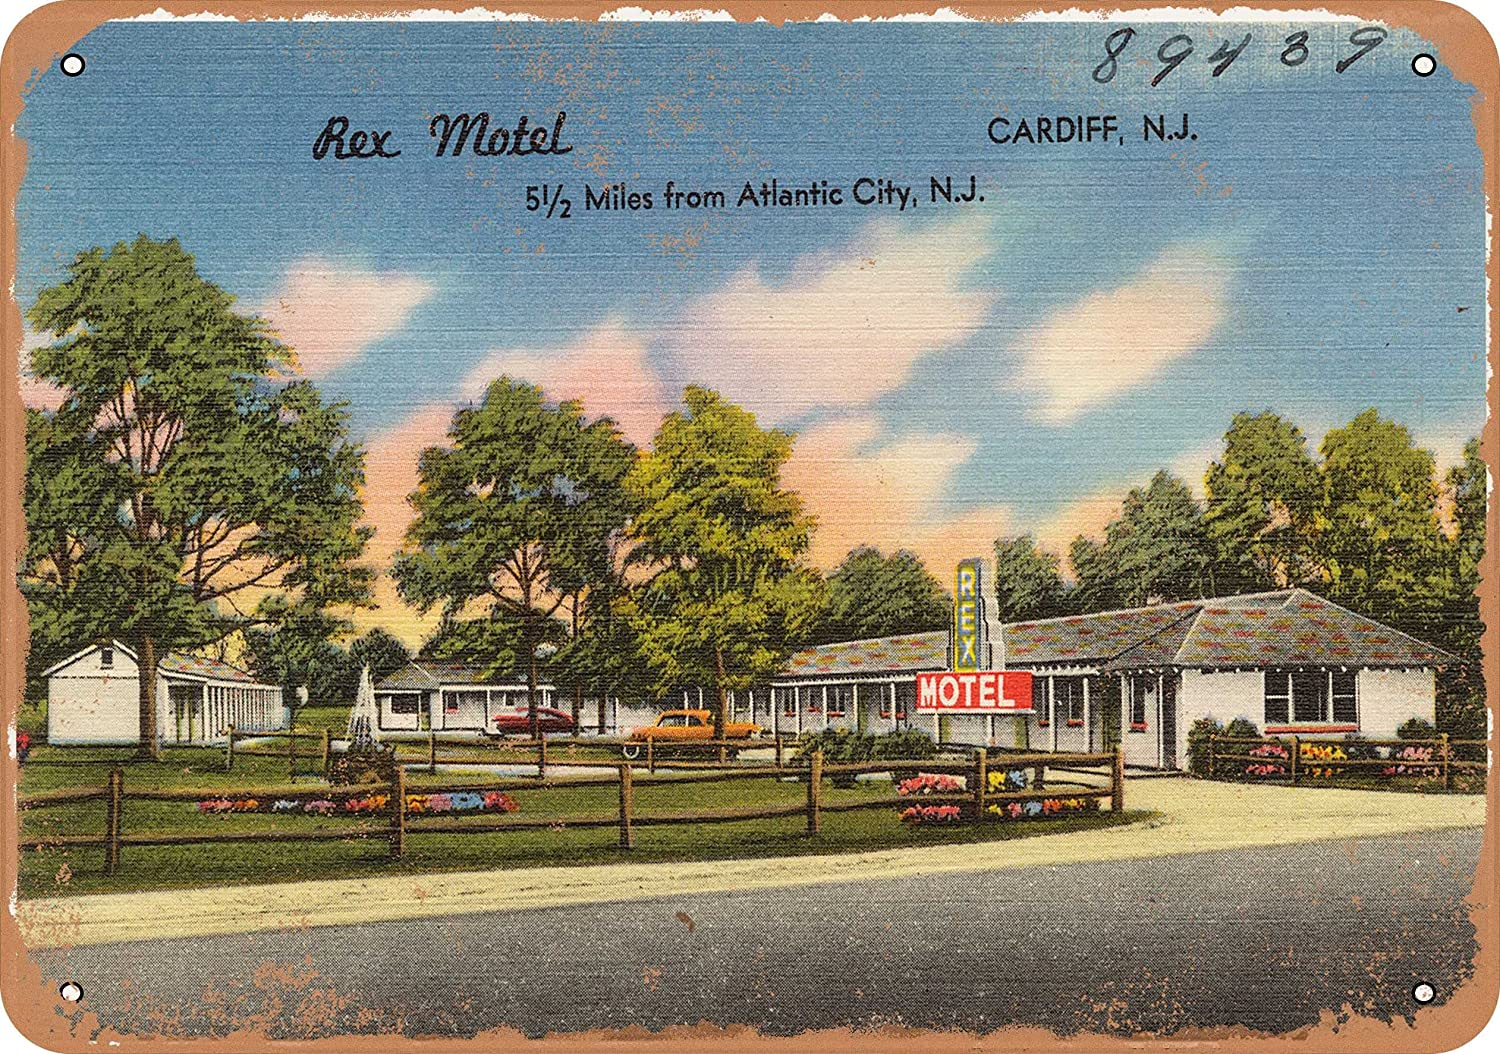 Wall-Color 10 x 14 Metal Sign - New Jersey Postcard - Rex Motel, Cardiff, N.J, 5 1 2 Miles from Atlantic City, N.J. 1 - Vintage Rusty Look